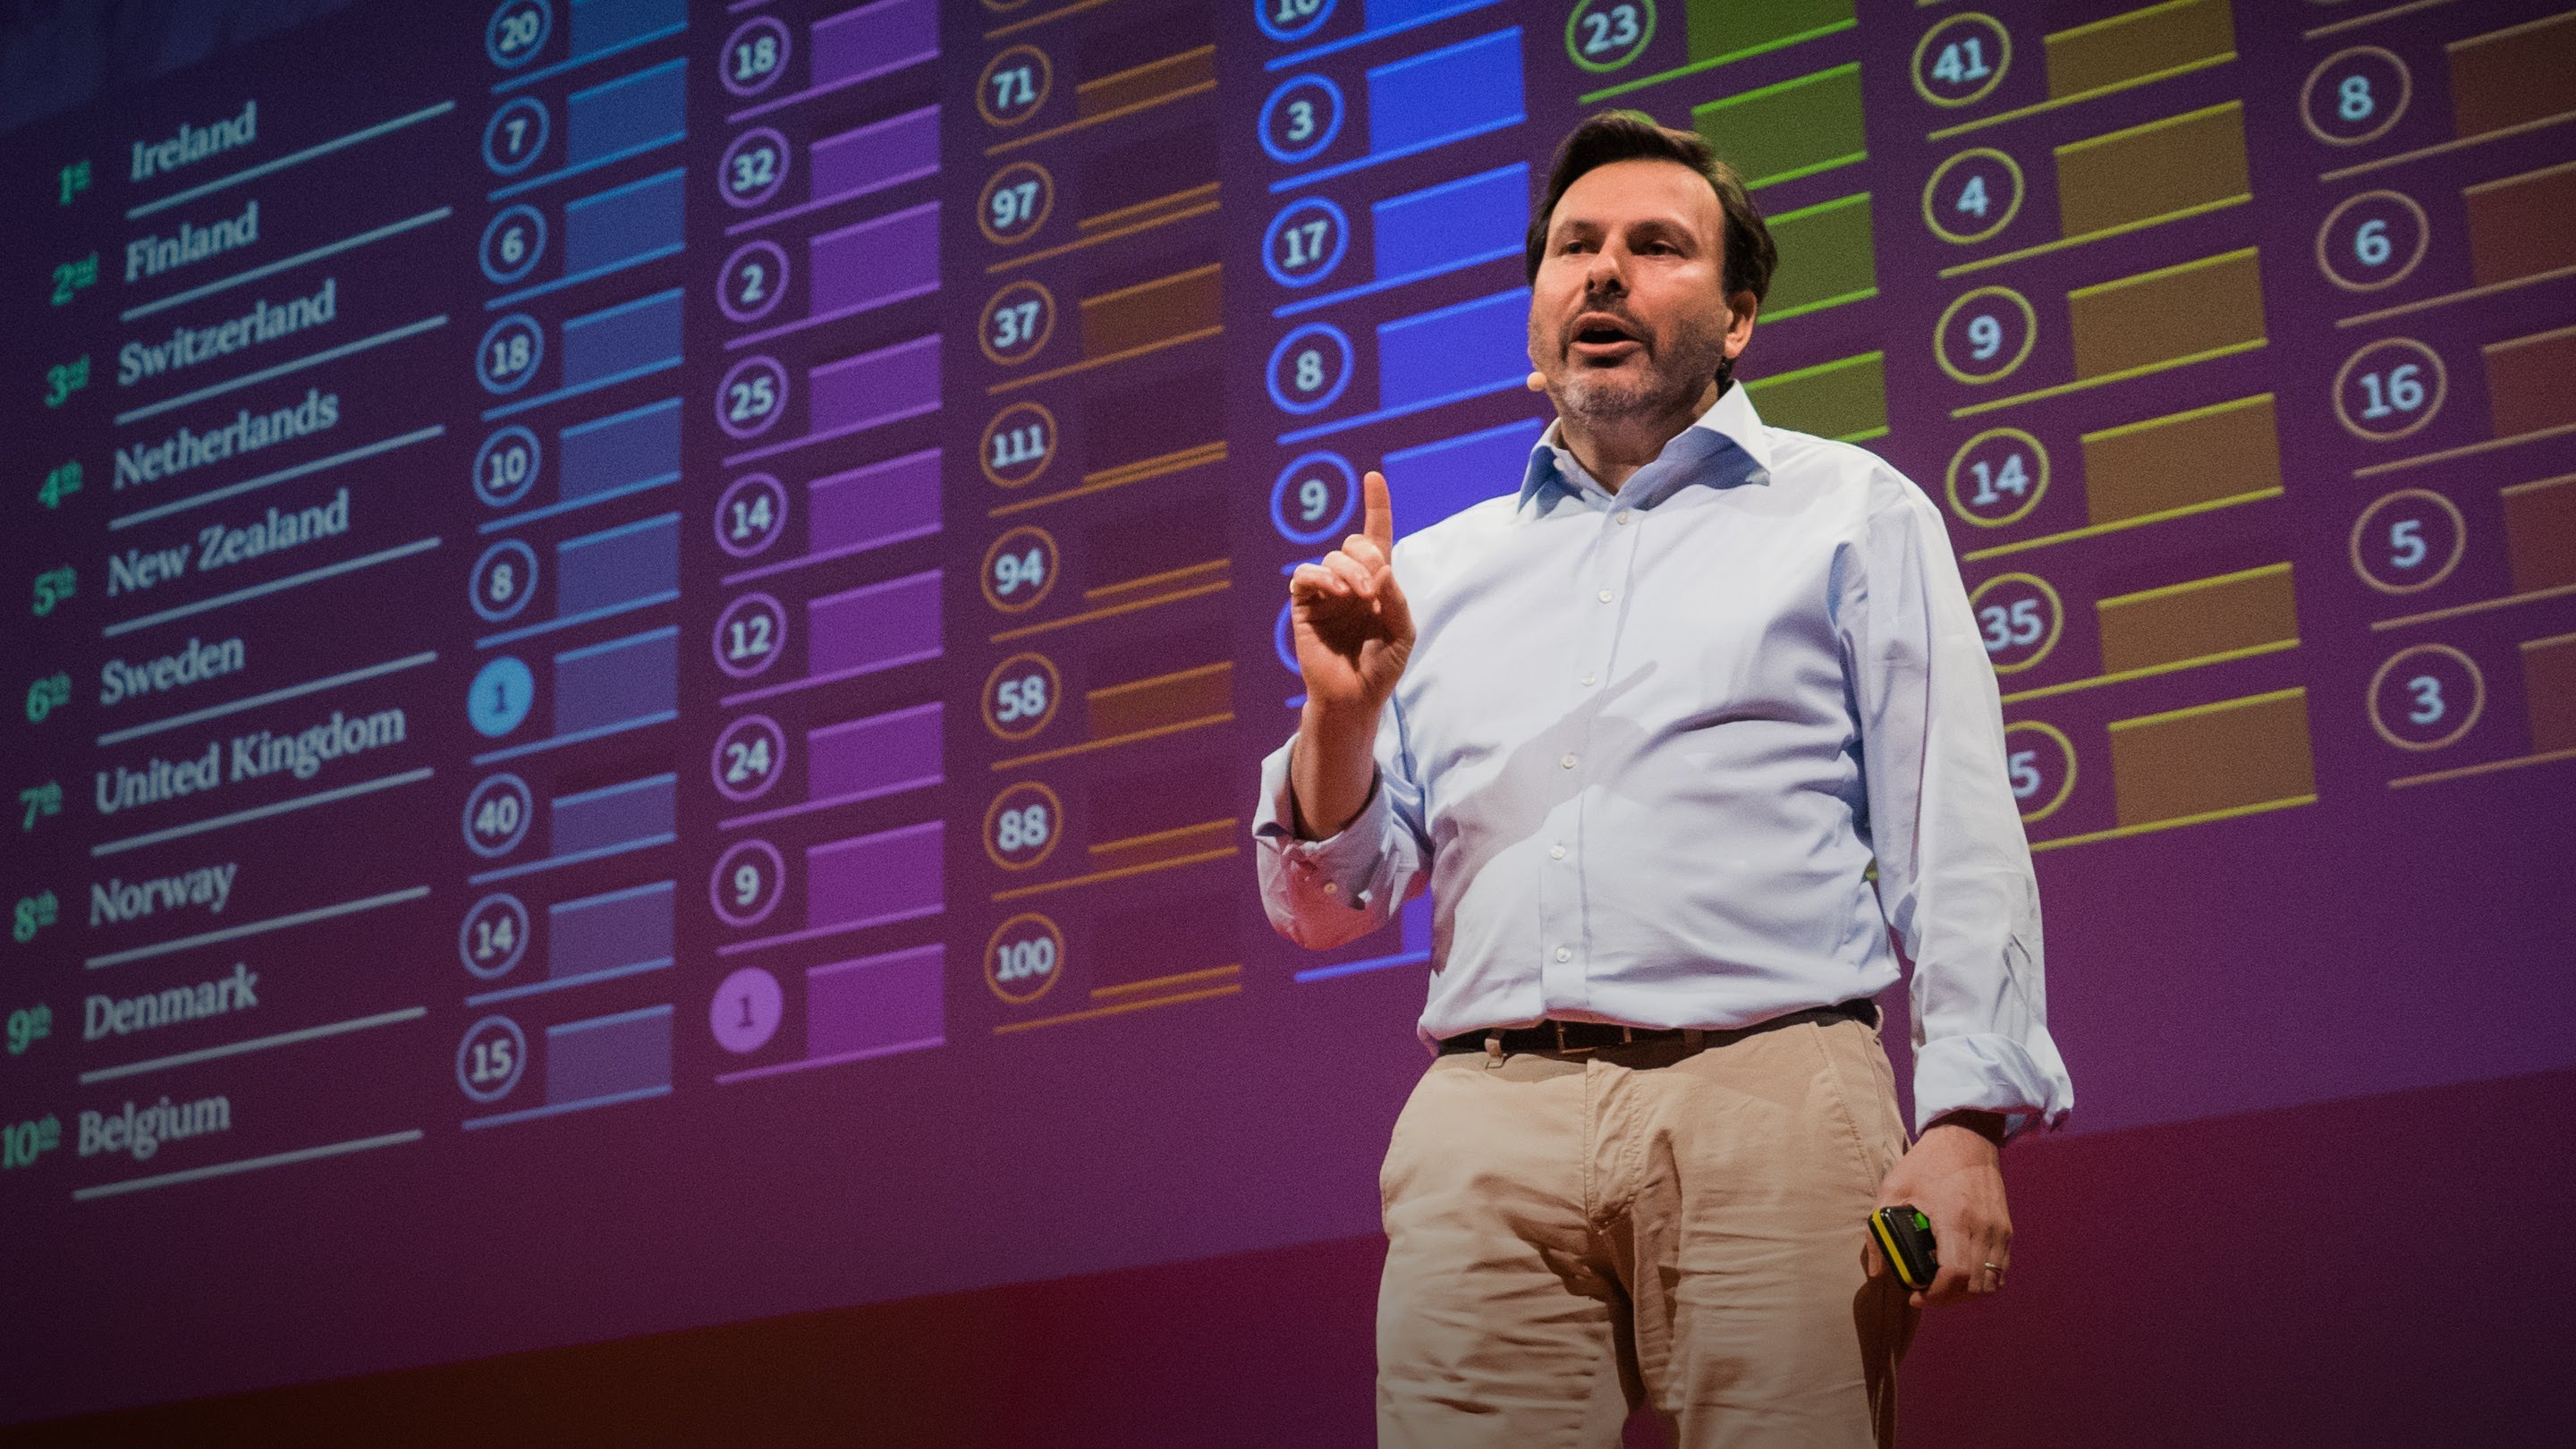 「Simon Anholt:哪個國家對世界作出最多貢獻?」- Which Country Does the Most Good for the World?